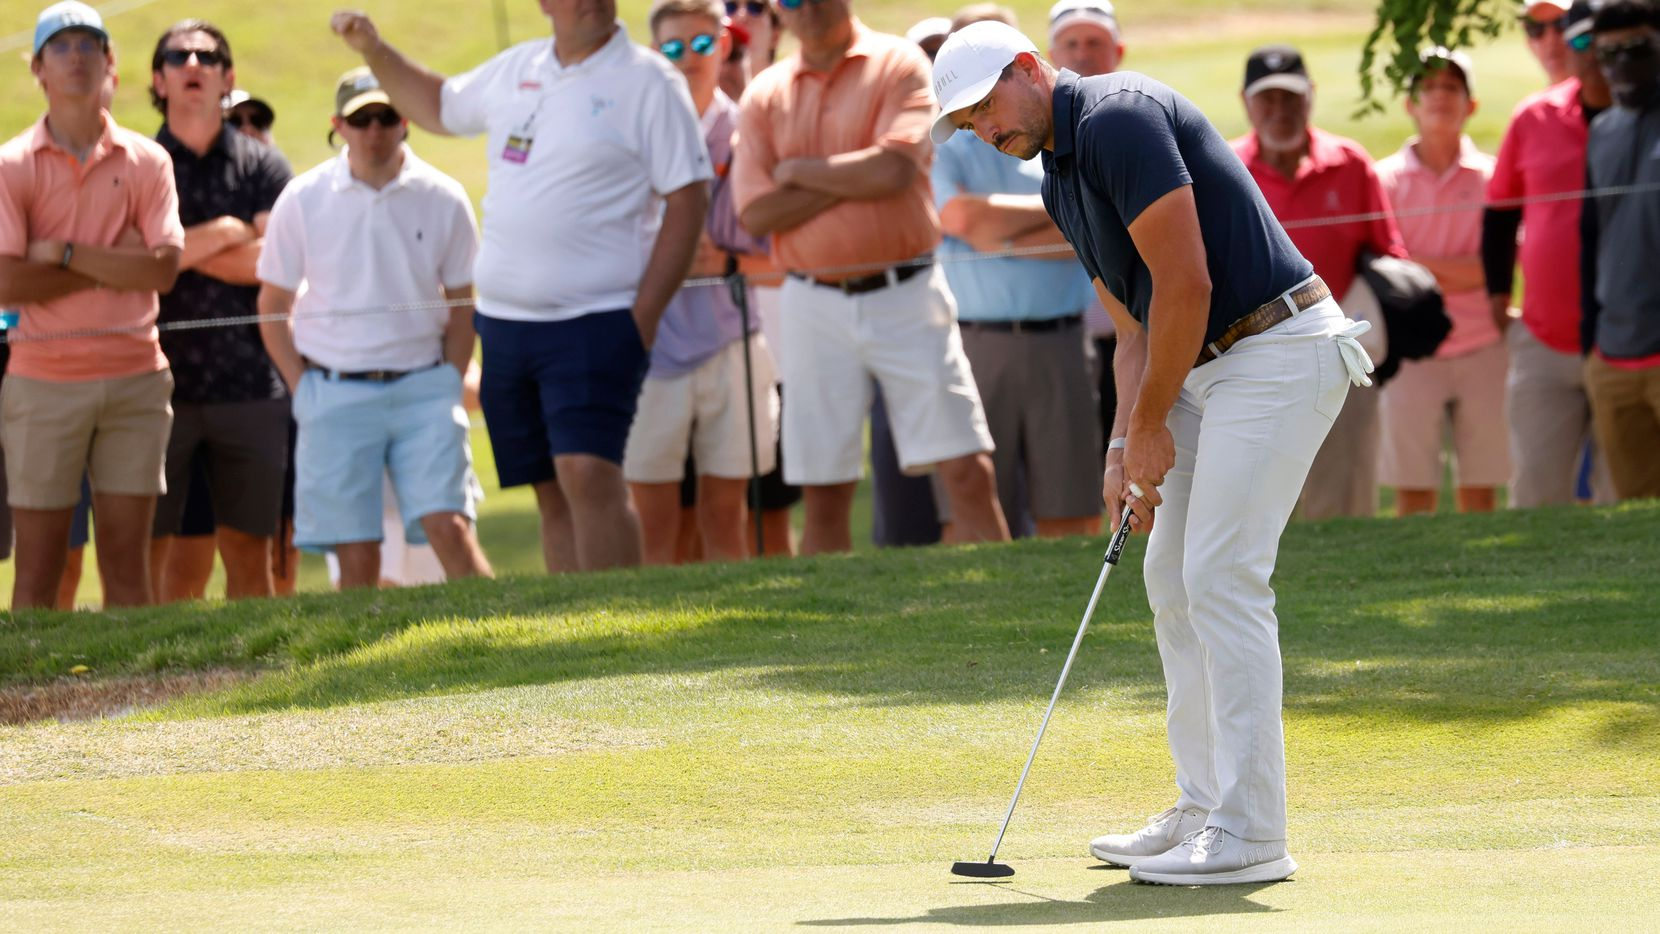 Scott Stallings watches his ball just miss on a chance for birdie on the 18th hole during round 3 of the AT&T Byron Nelson  at TPC Craig Ranch on Saturday, May 15, 2021 in McKinney, Texas. (Vernon Bryant/The Dallas Morning News)